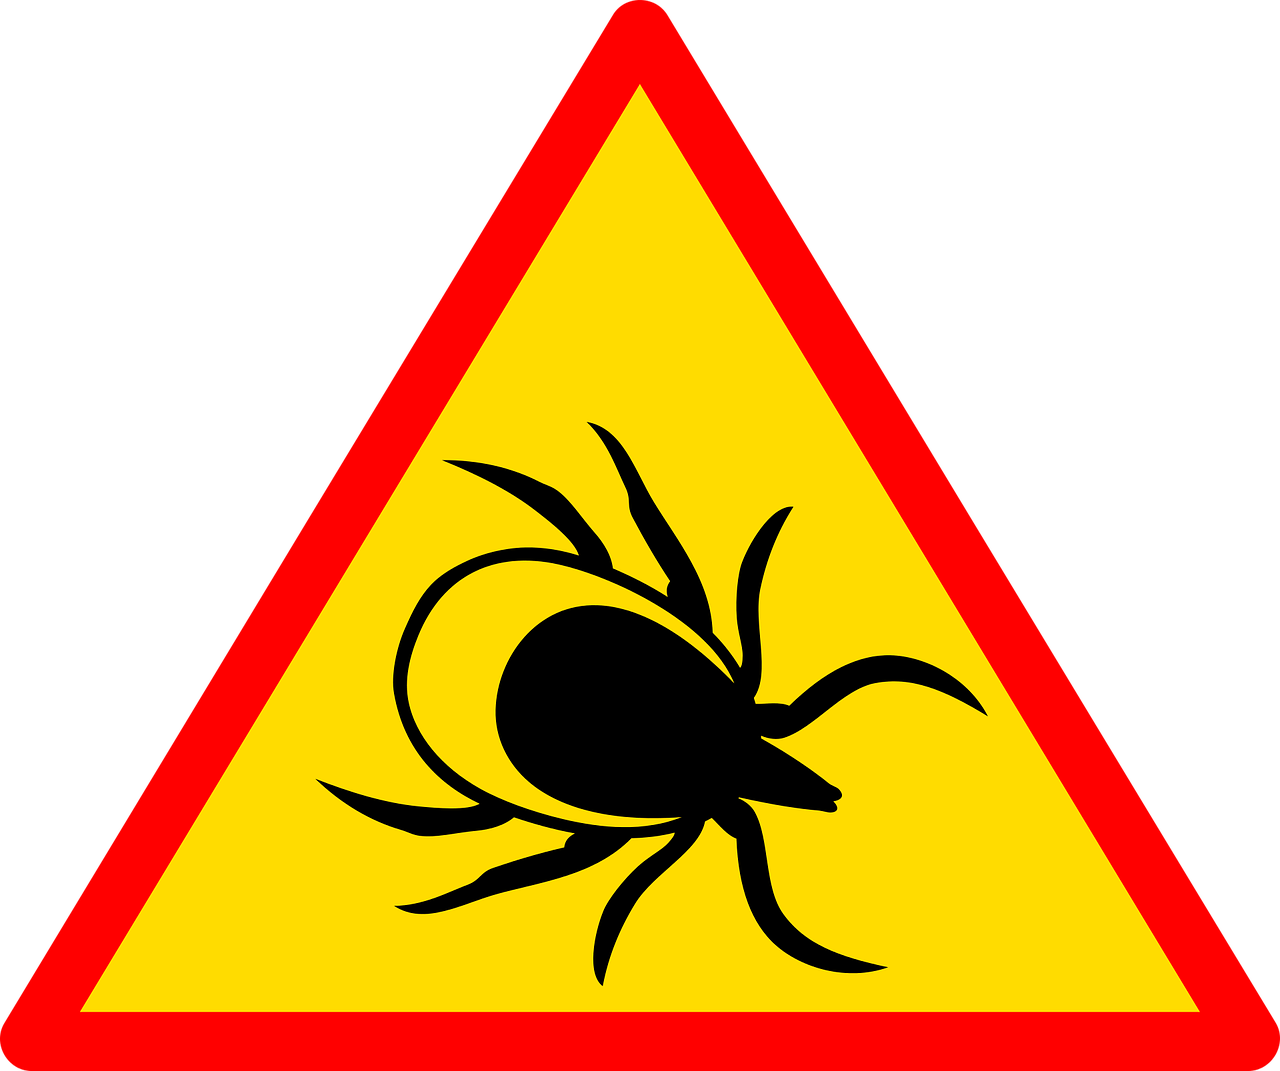 , Despite coronavirus lockdown, tick-borne infections are on the rise in the Czech Republic, Expats.cz Latest News & Articles - Prague and the Czech Republic, Expats.cz Latest News & Articles - Prague and the Czech Republic